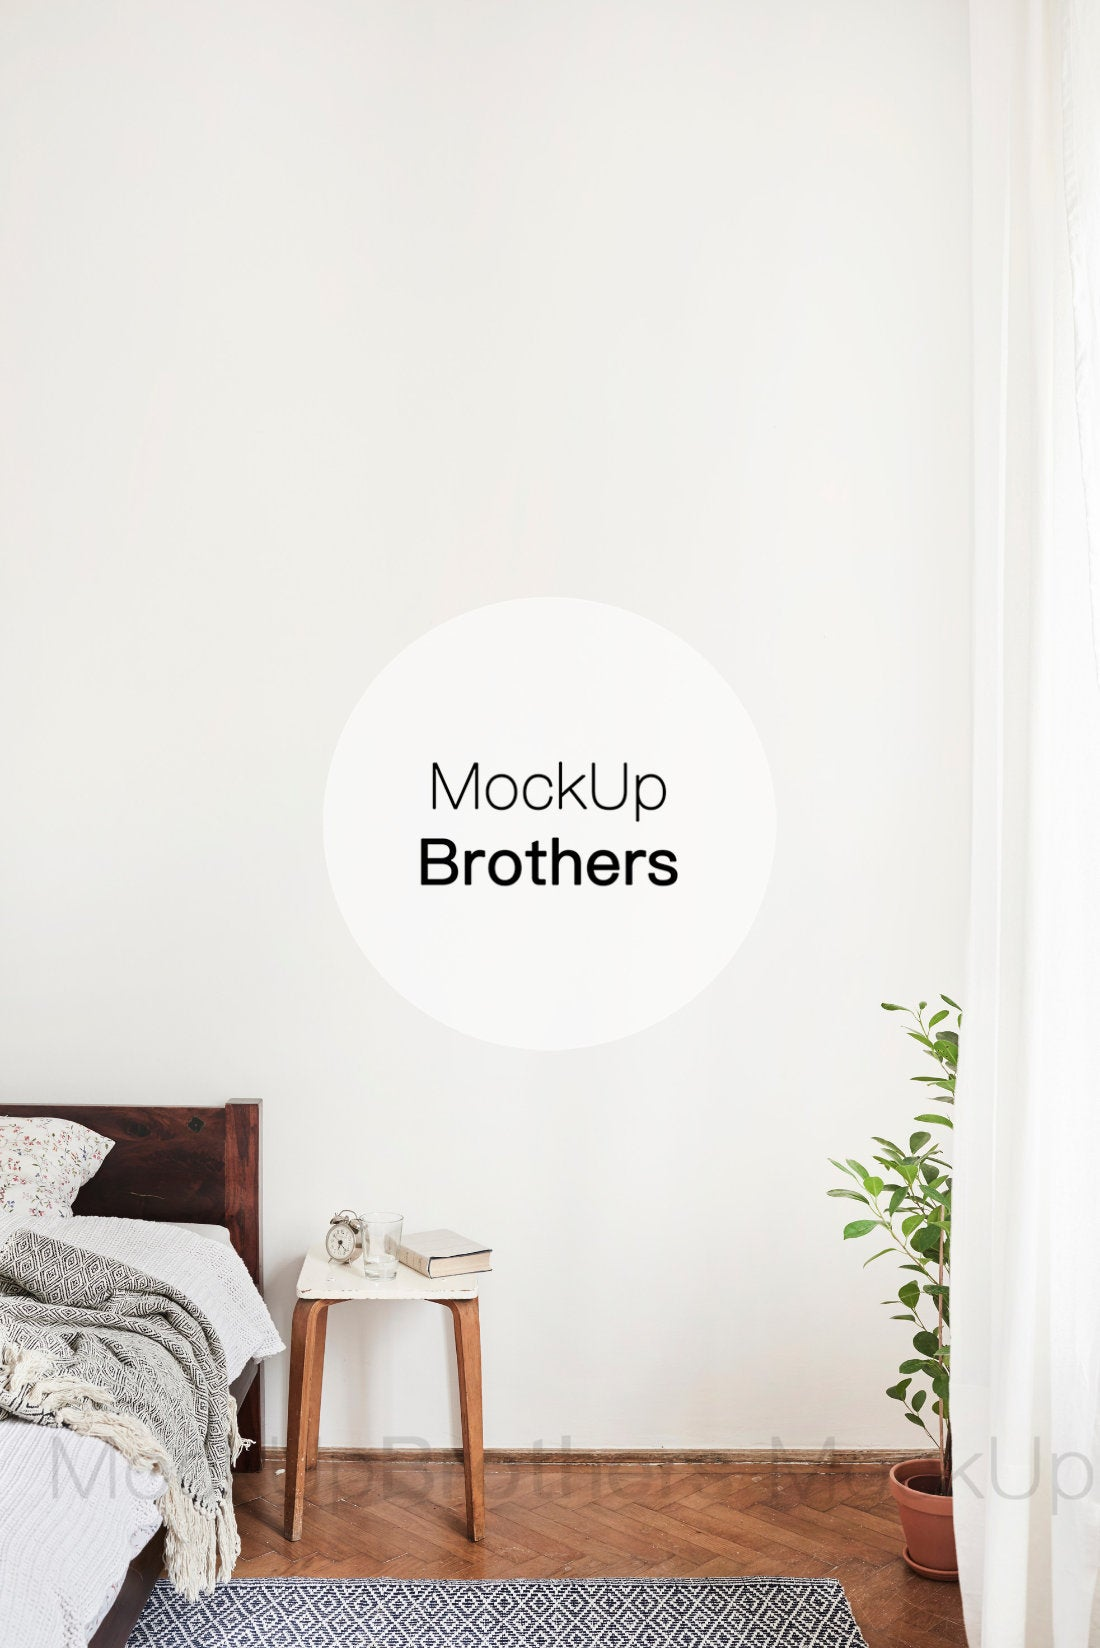 Vertical bedroom interior mockup by Mockup Brothers